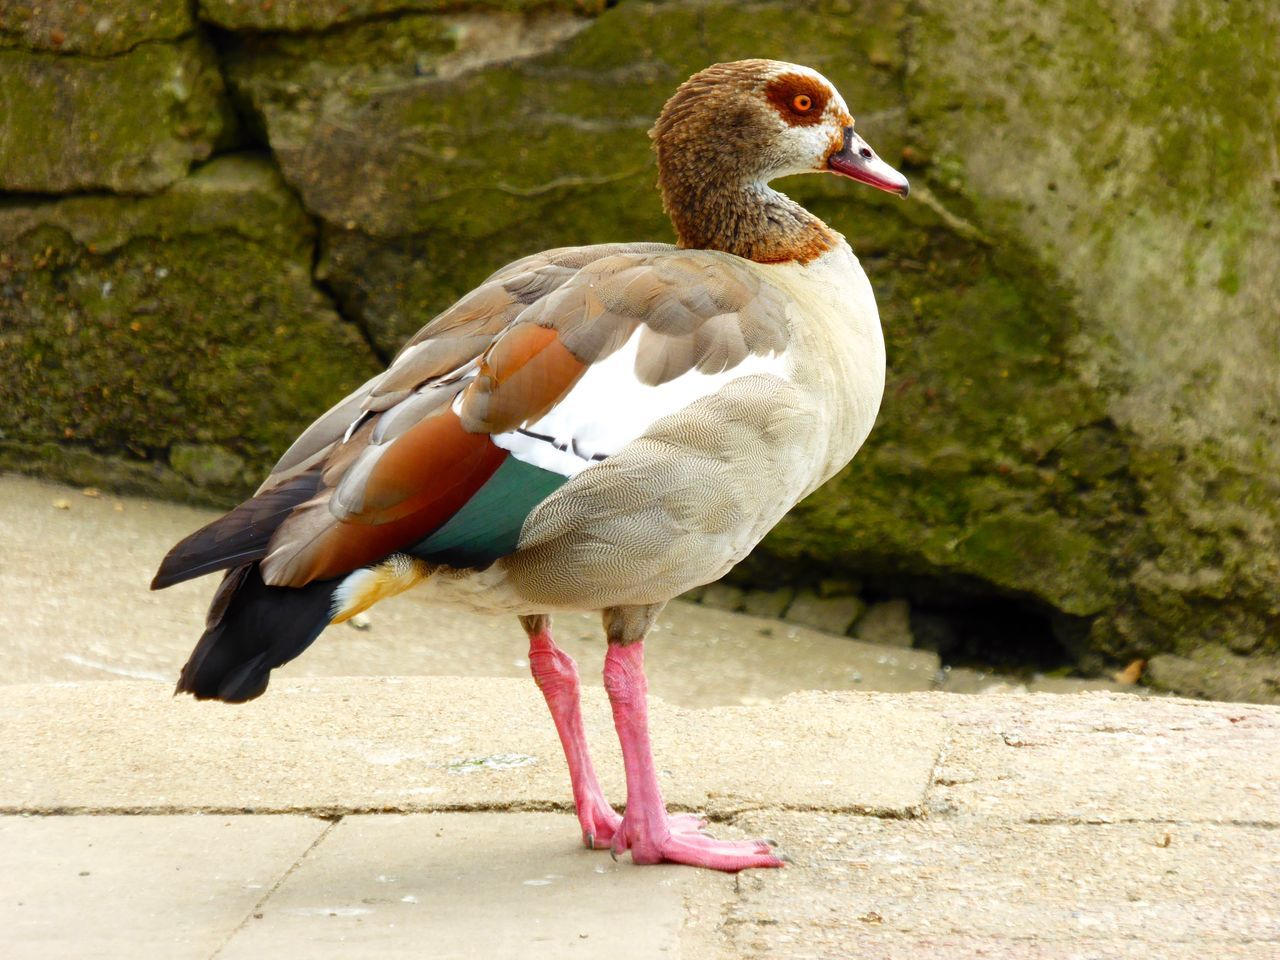 Goose Nature Bird Birds Geese Family Egyptian Goose Egyptian Geese Gooses Geese Water Bird London Thames Thames Thamesriver Thames River Wildlife Wildlife & Nature Wildlife Photography Bird Photography Birds_collection Birdwatching